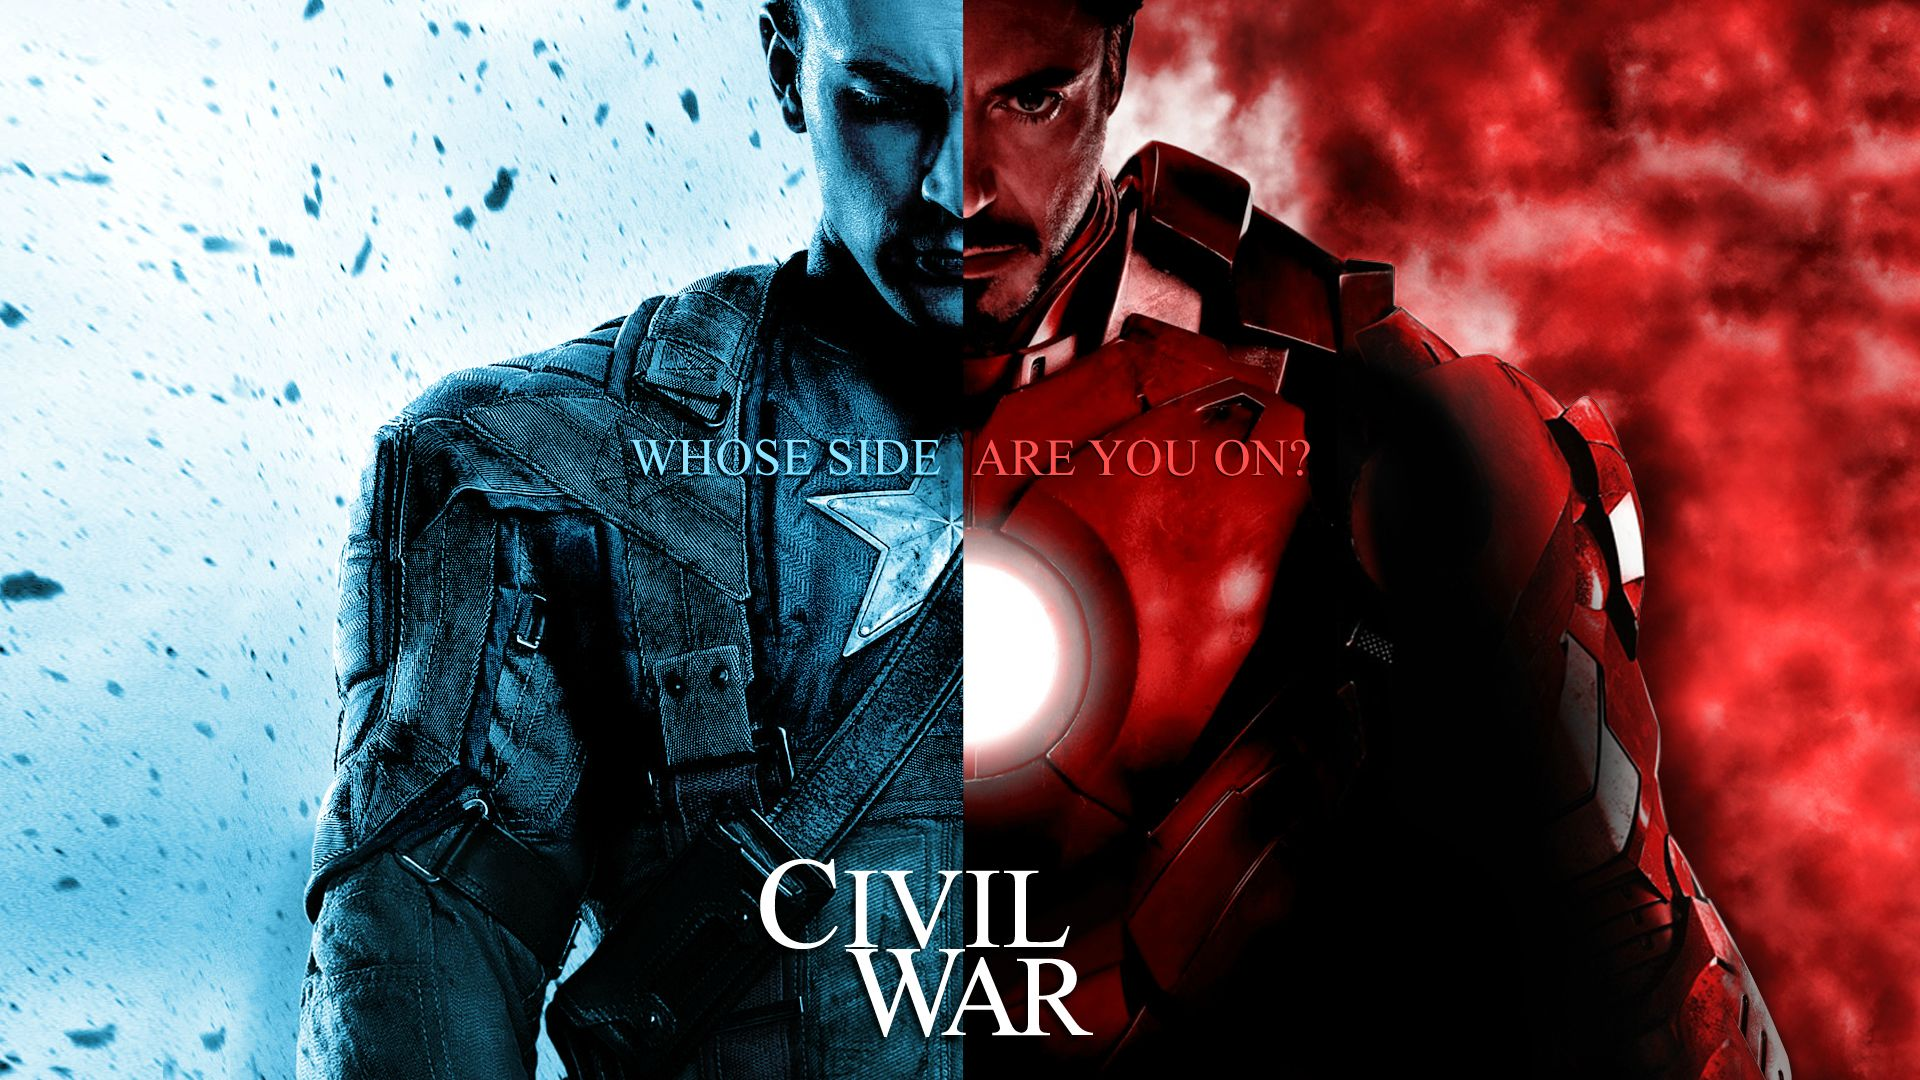 h20wkj2-iron-man-vs-captain-america-who-sides-with-who-in-marvel-s-civil-war-could-the-hulk-trigger-civil-war-in-the-marvel-cin-who-can-rep-553b1bc8-5e54-45e8-9702-d6c9da3c970d